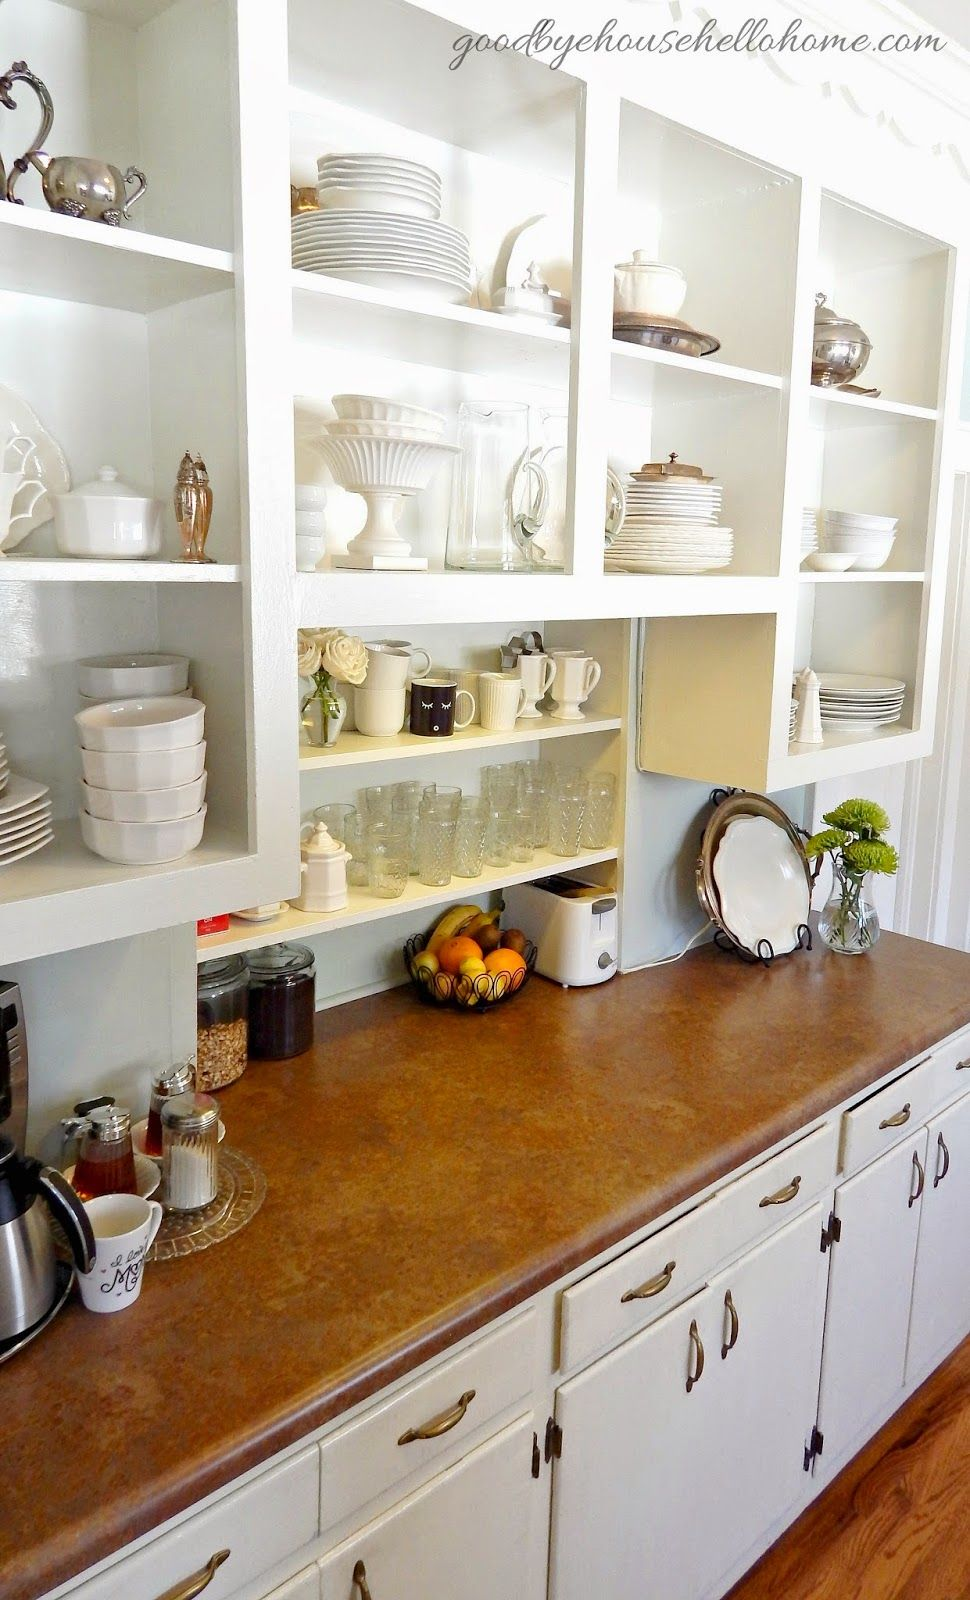 Tiny Craftsman Comes With Espresso Station: Goodbye, House. Hello, Home! Blog : Open Kitchen Cabinets